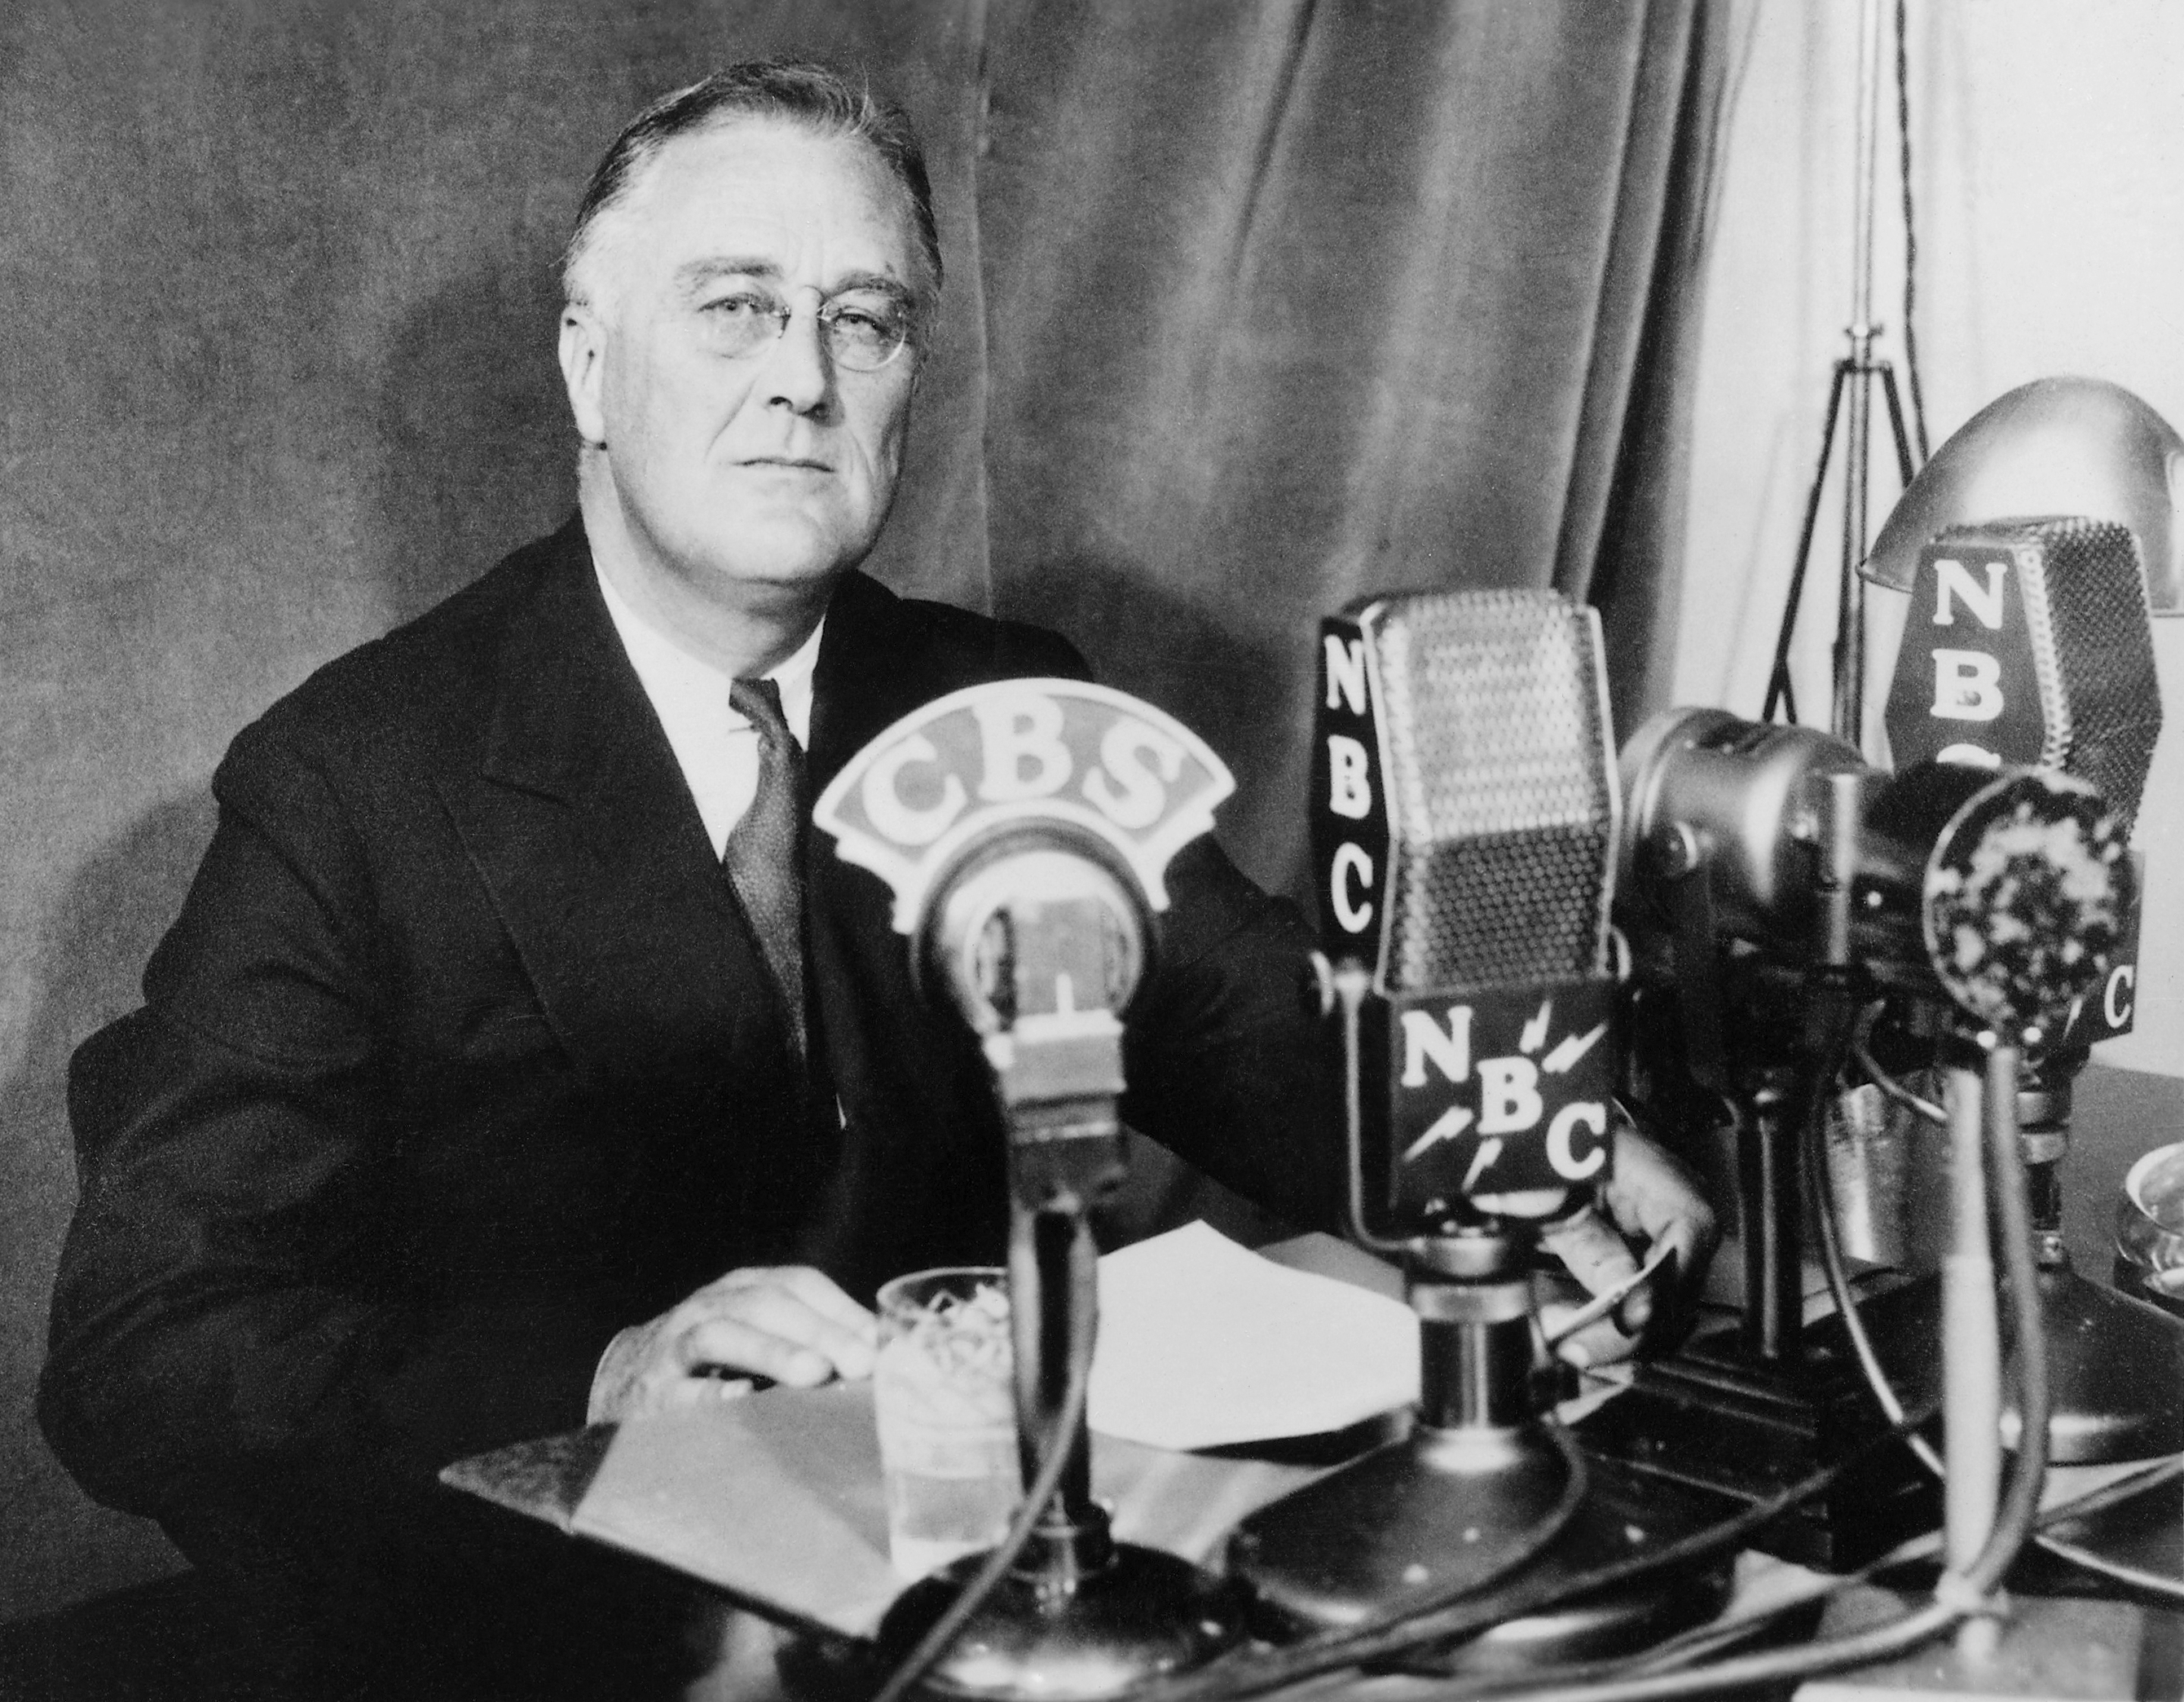 https://upload.wikimedia.org/wikipedia/commons/d/d0/FDR-September-30-1934.jpg